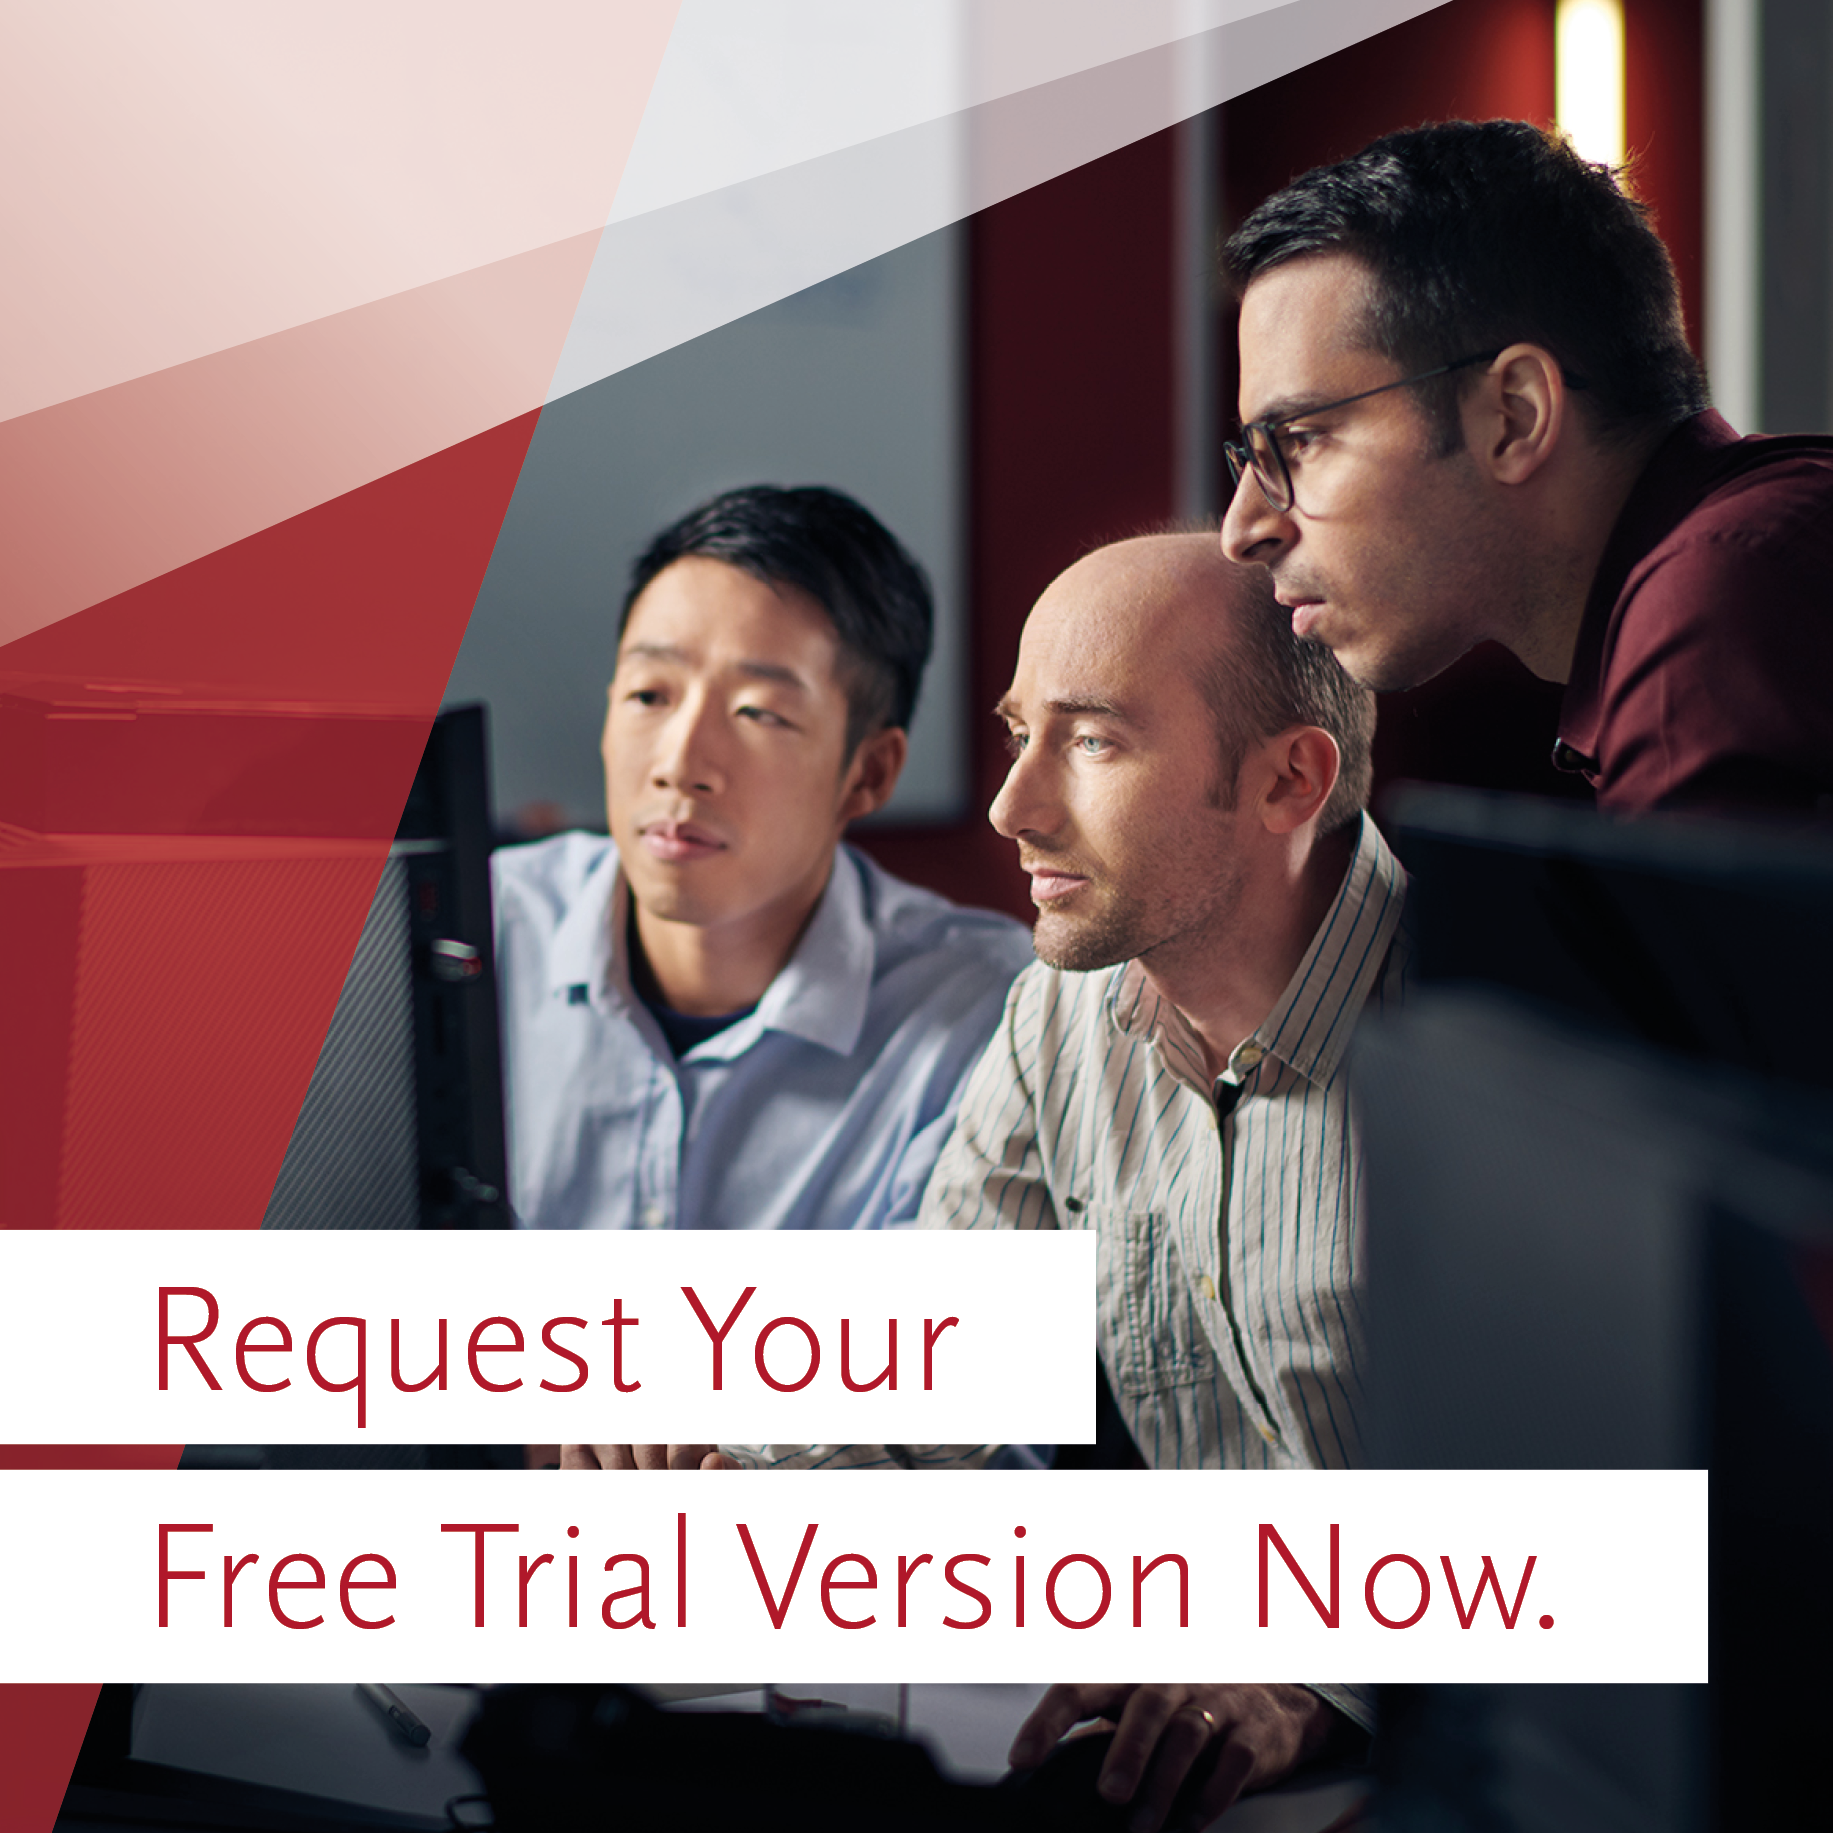 Redquest Your Free Trial Version Now from LightTrans International UG